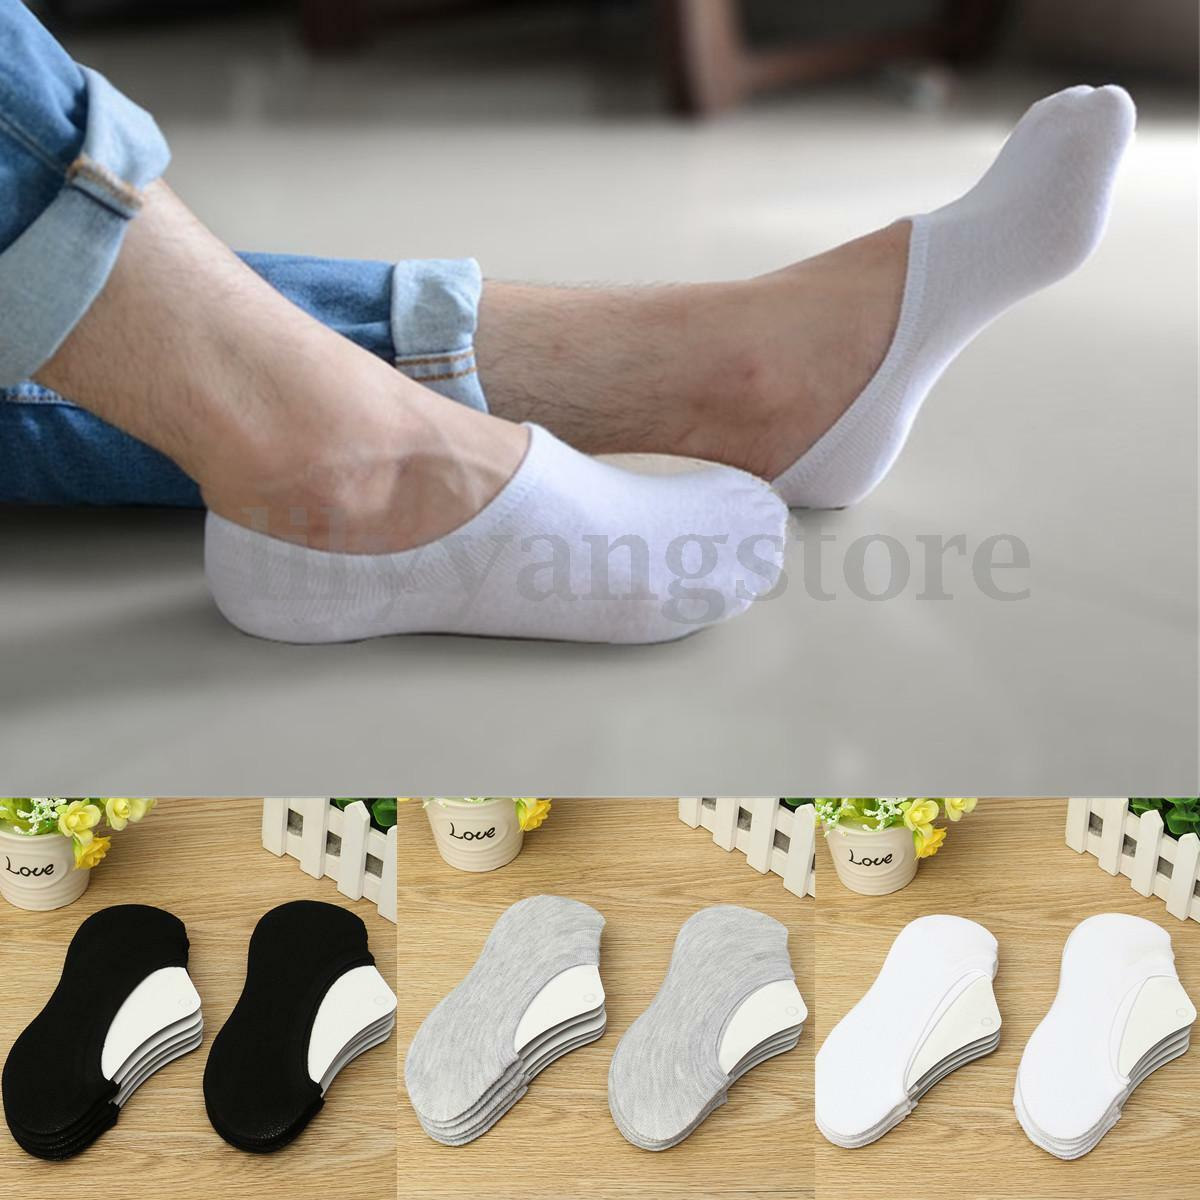 20 Pairs Men Women Loafer No Show Non-Slip Invisible Low Cut Boats Socks Cotton